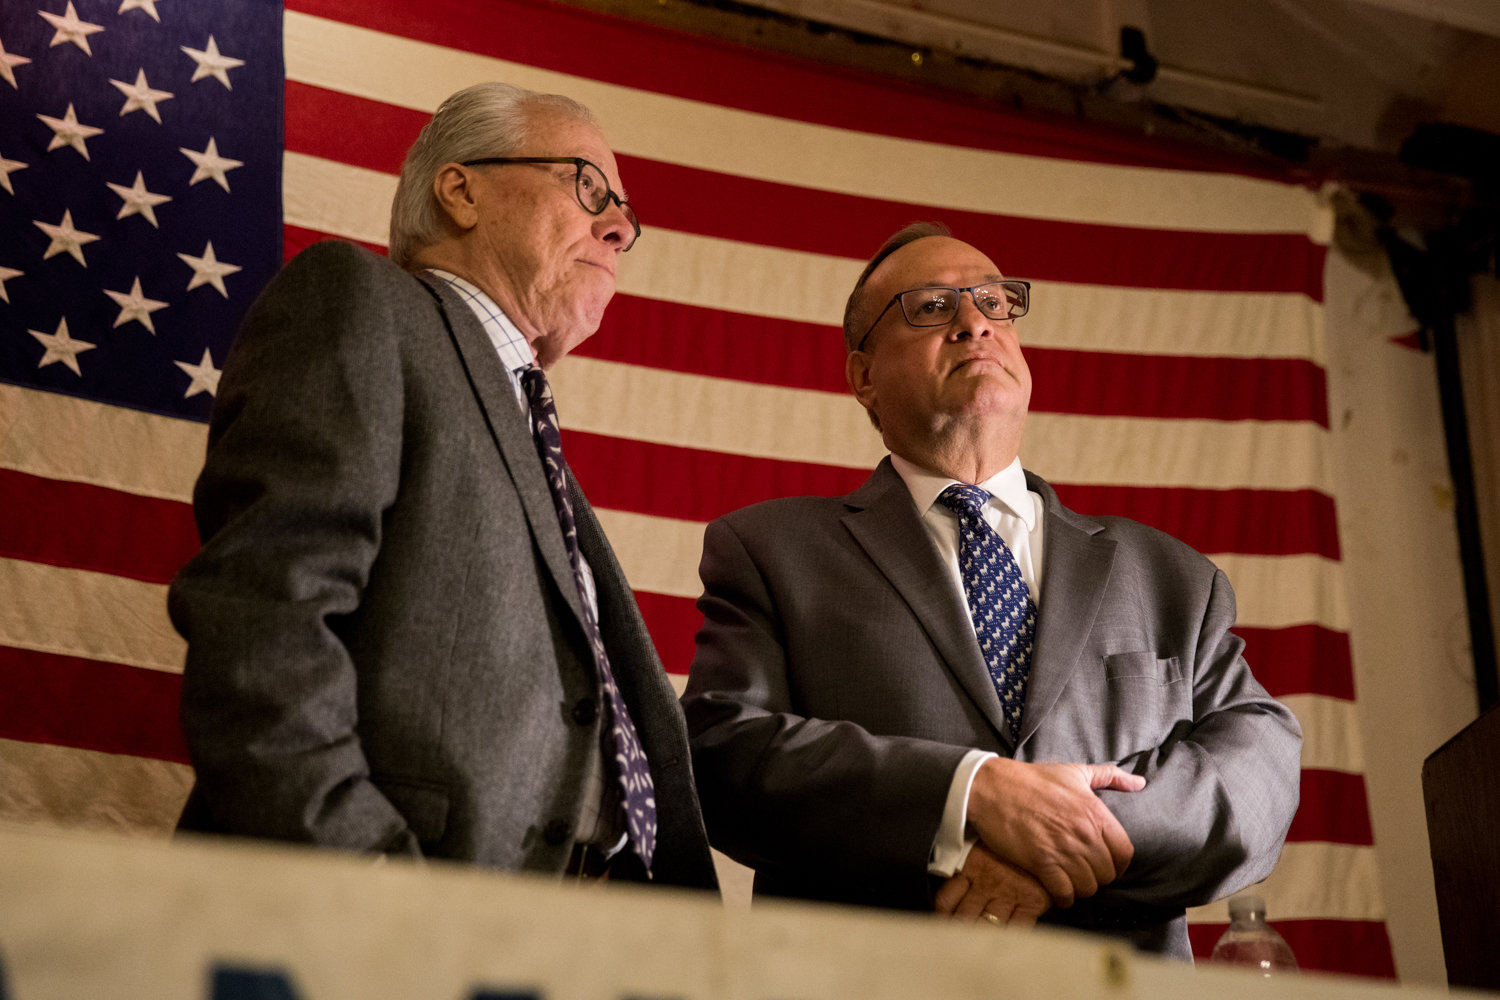 Benjamin Franklin Reform Democratic Club president Michael Heller, right, and vice president Bruce Feld preside over the club's annual meeting. Despite facing unexpected challengers to their positions, both men retained their spots in the club's leadership election.